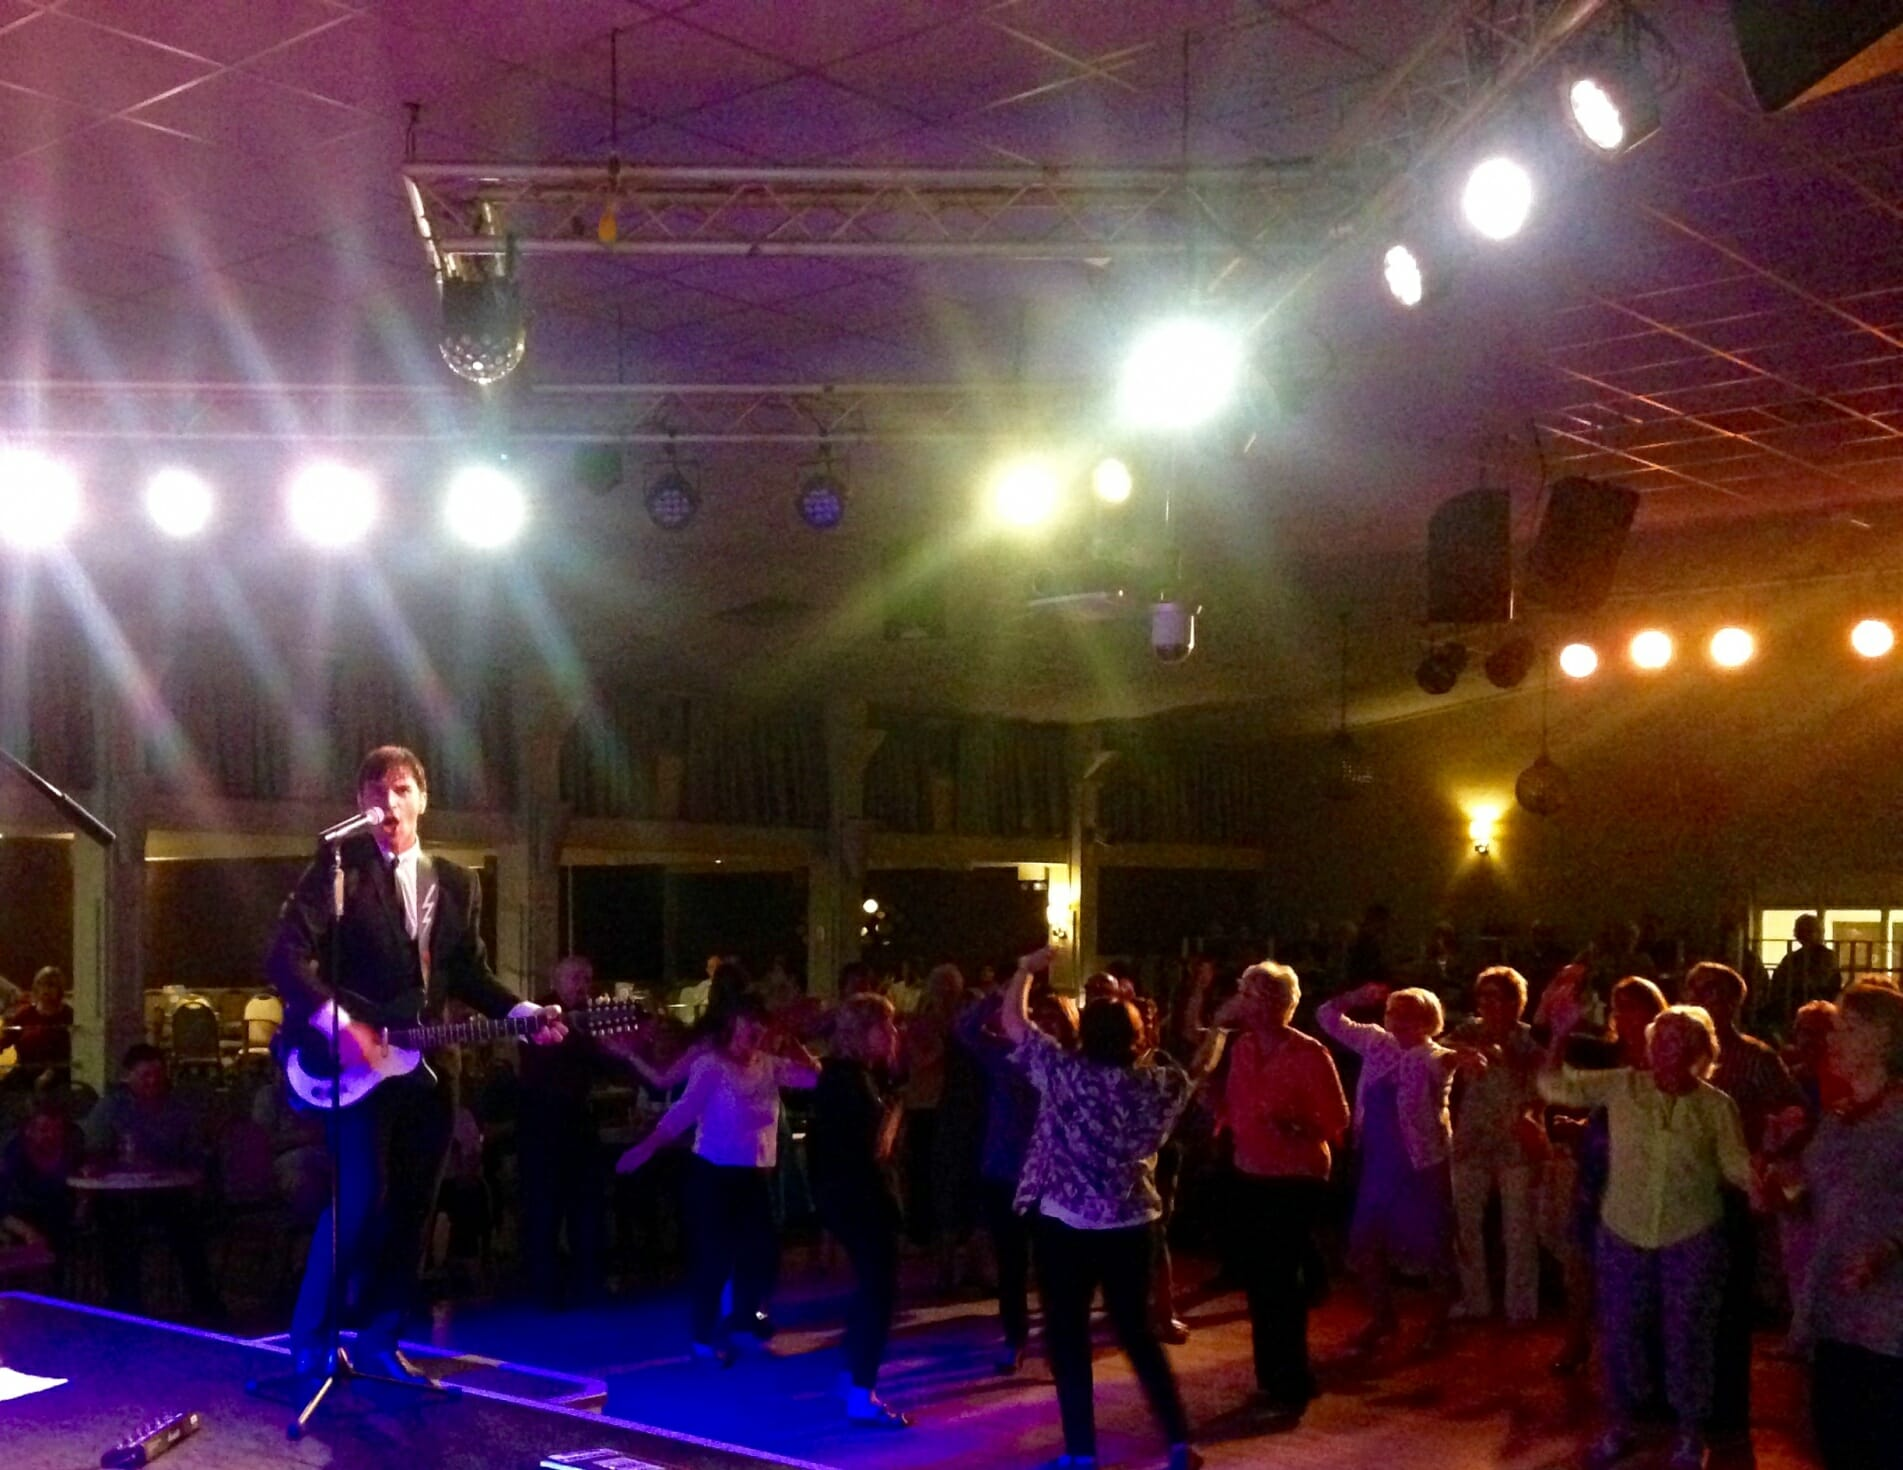 band in hants, band for hire in hampshire, The Zoots 1960s show in Hampshire, band for wedding isle of wight